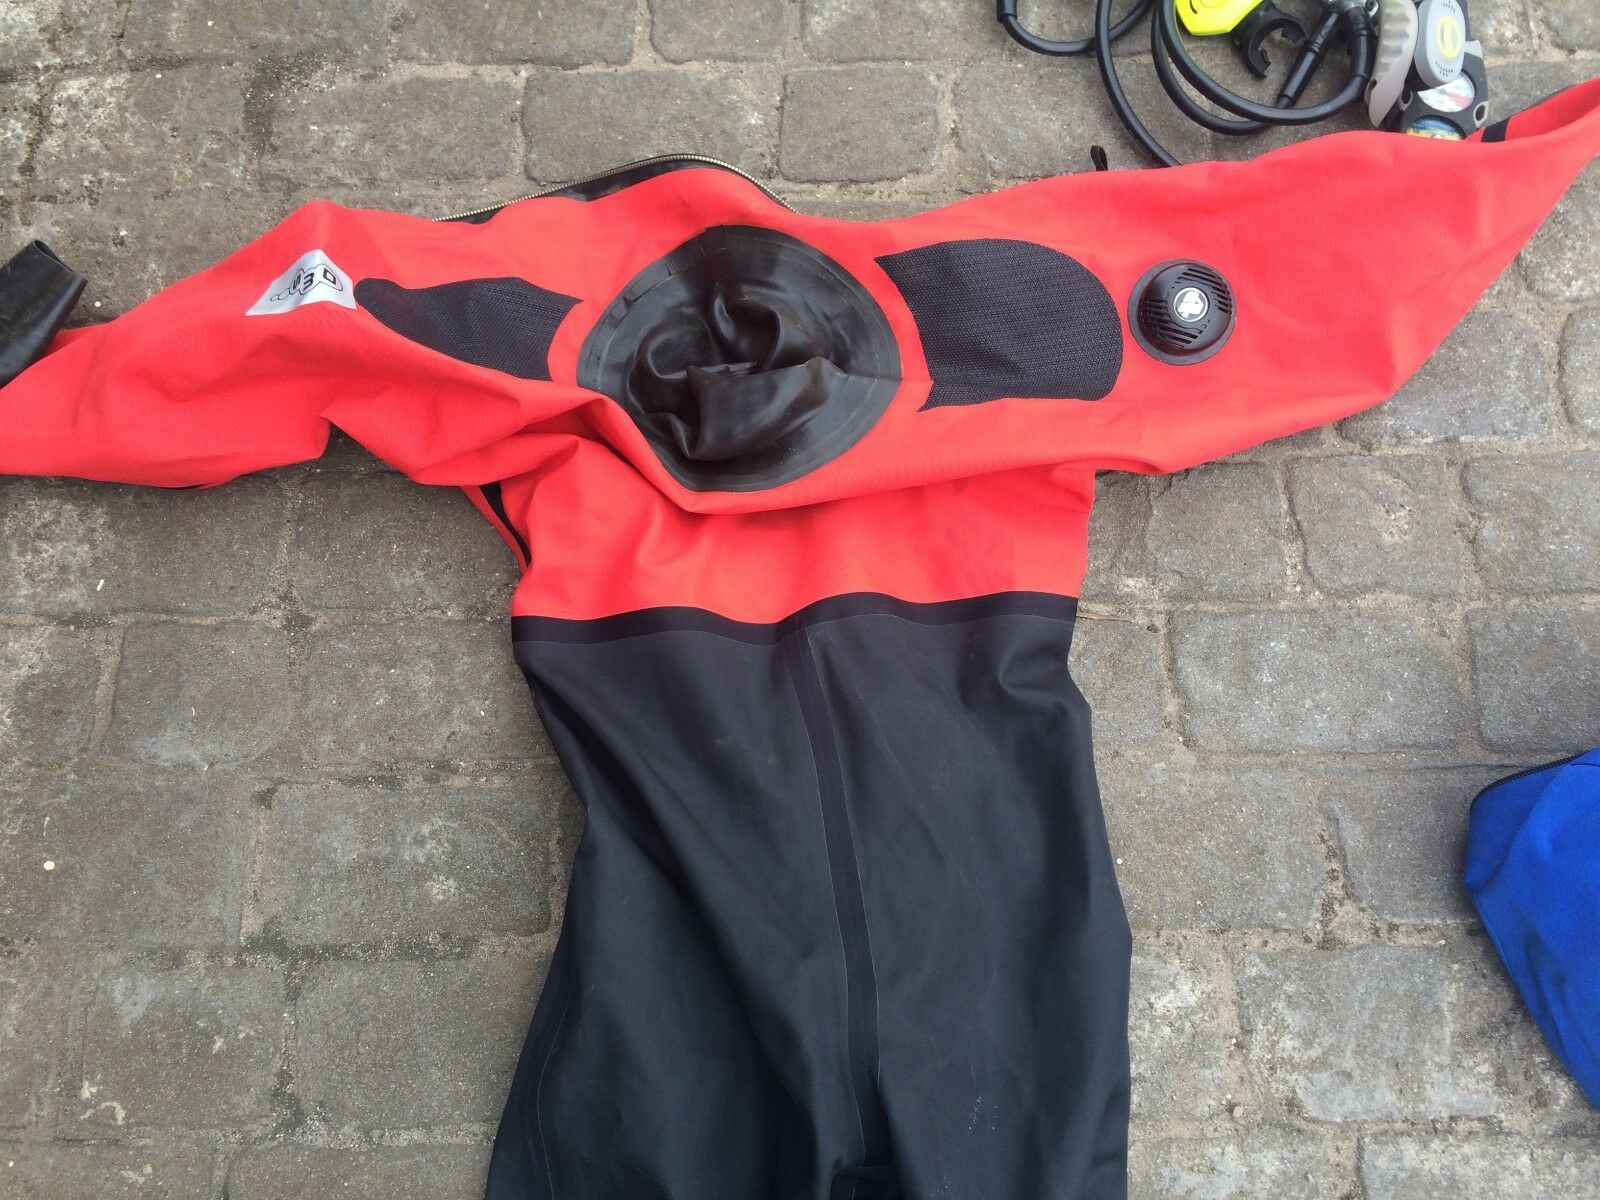 DRY SUITS FOR A LADY M blueE & GENT XL RED, WEIGHTS, REGULATORS, STAB VESTS  X 2